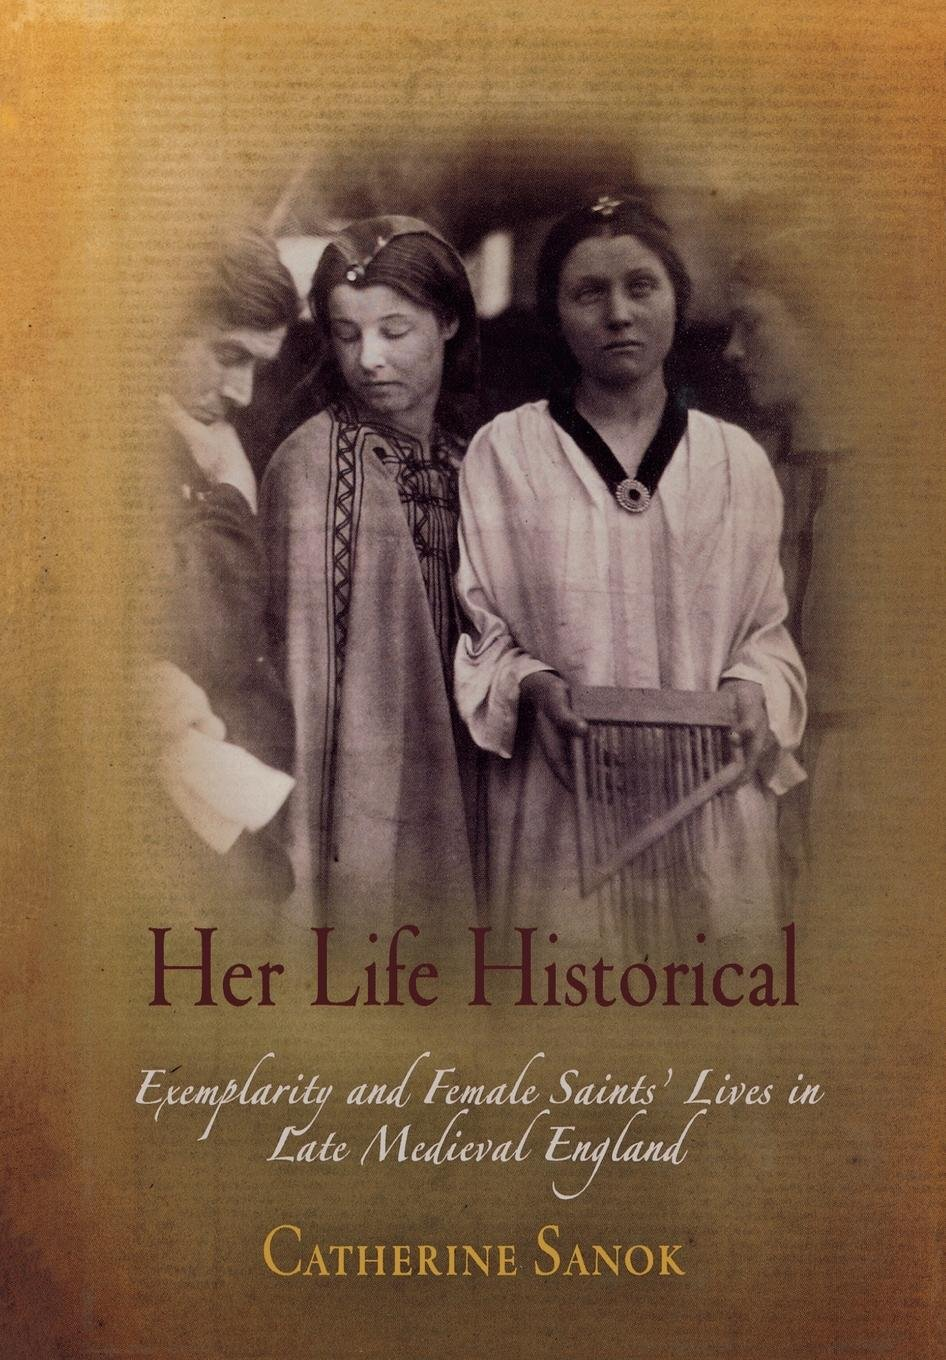 Her Life Historical: Exemplarity and Female Saints' Lives in Late Medieval England (The Middle Ages Series)